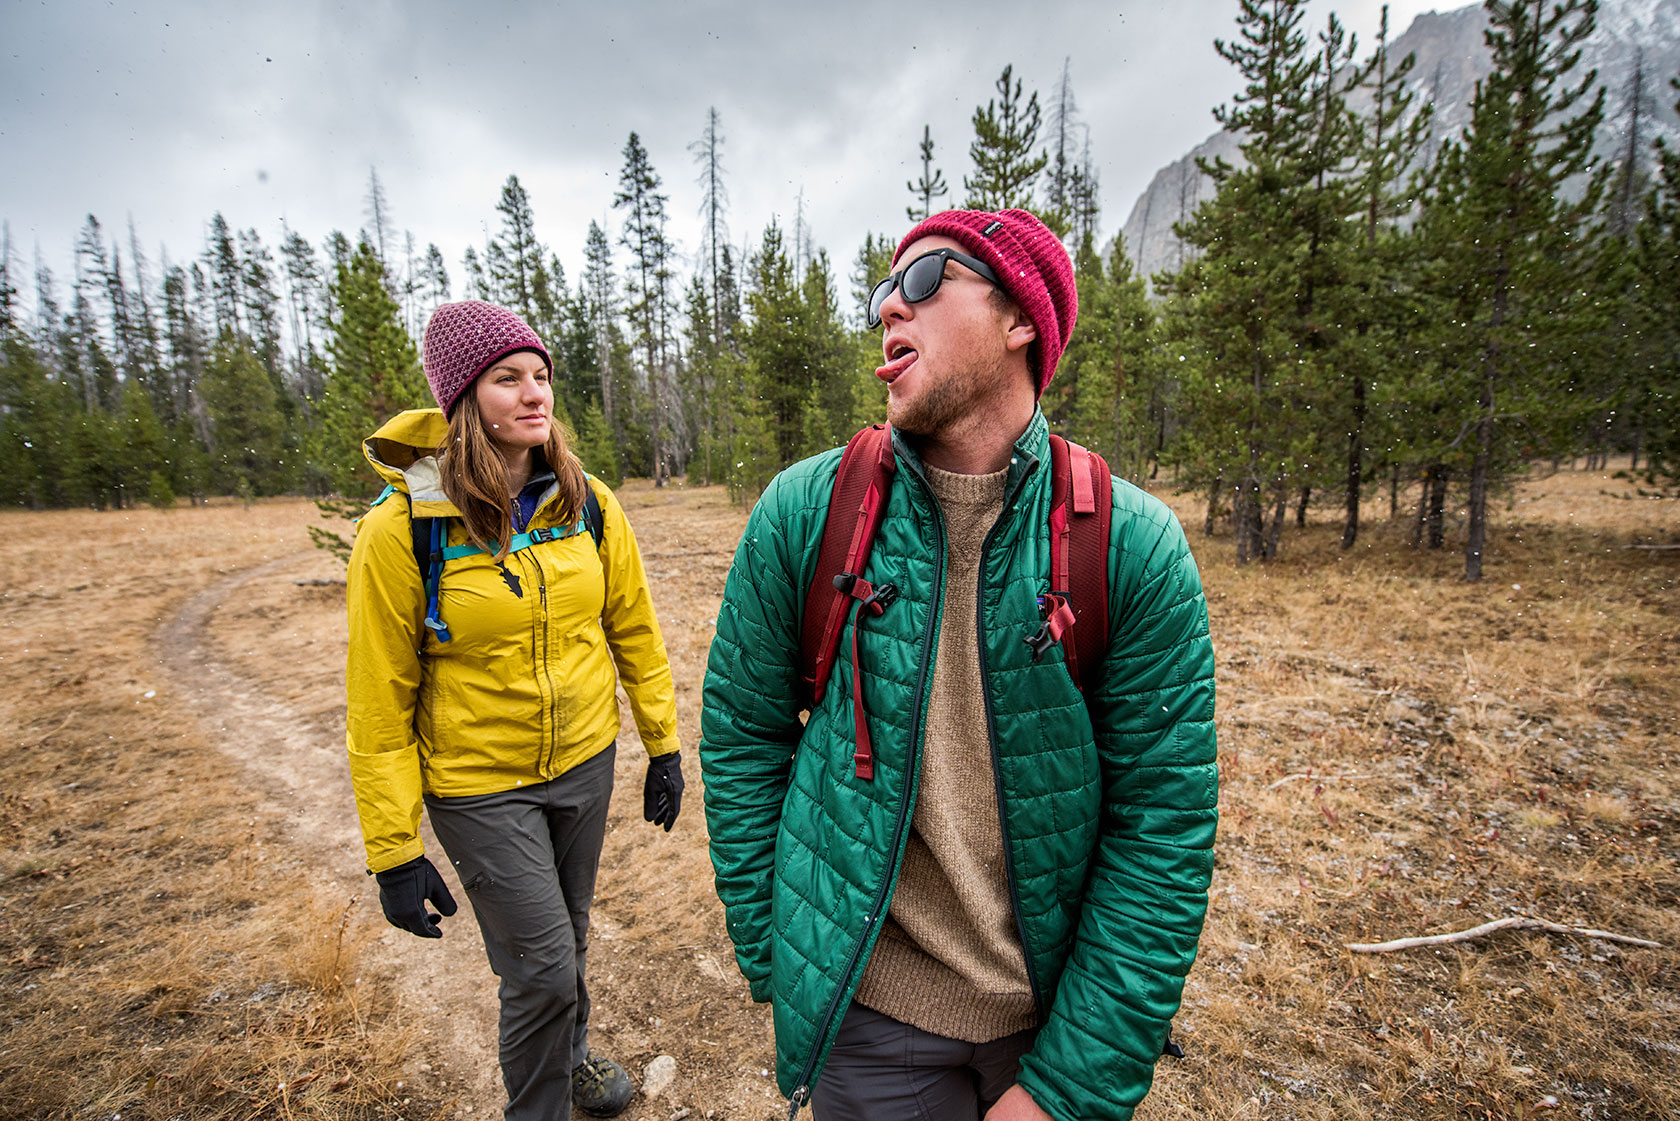 austin-trigg-patagonia-sawtooth-hiking-catch-snow-flakes-stanley-lake-advenure-wilderness-forest-idaho-outside-lifestyle-day-fall-weather-mountains-meadow.jpg